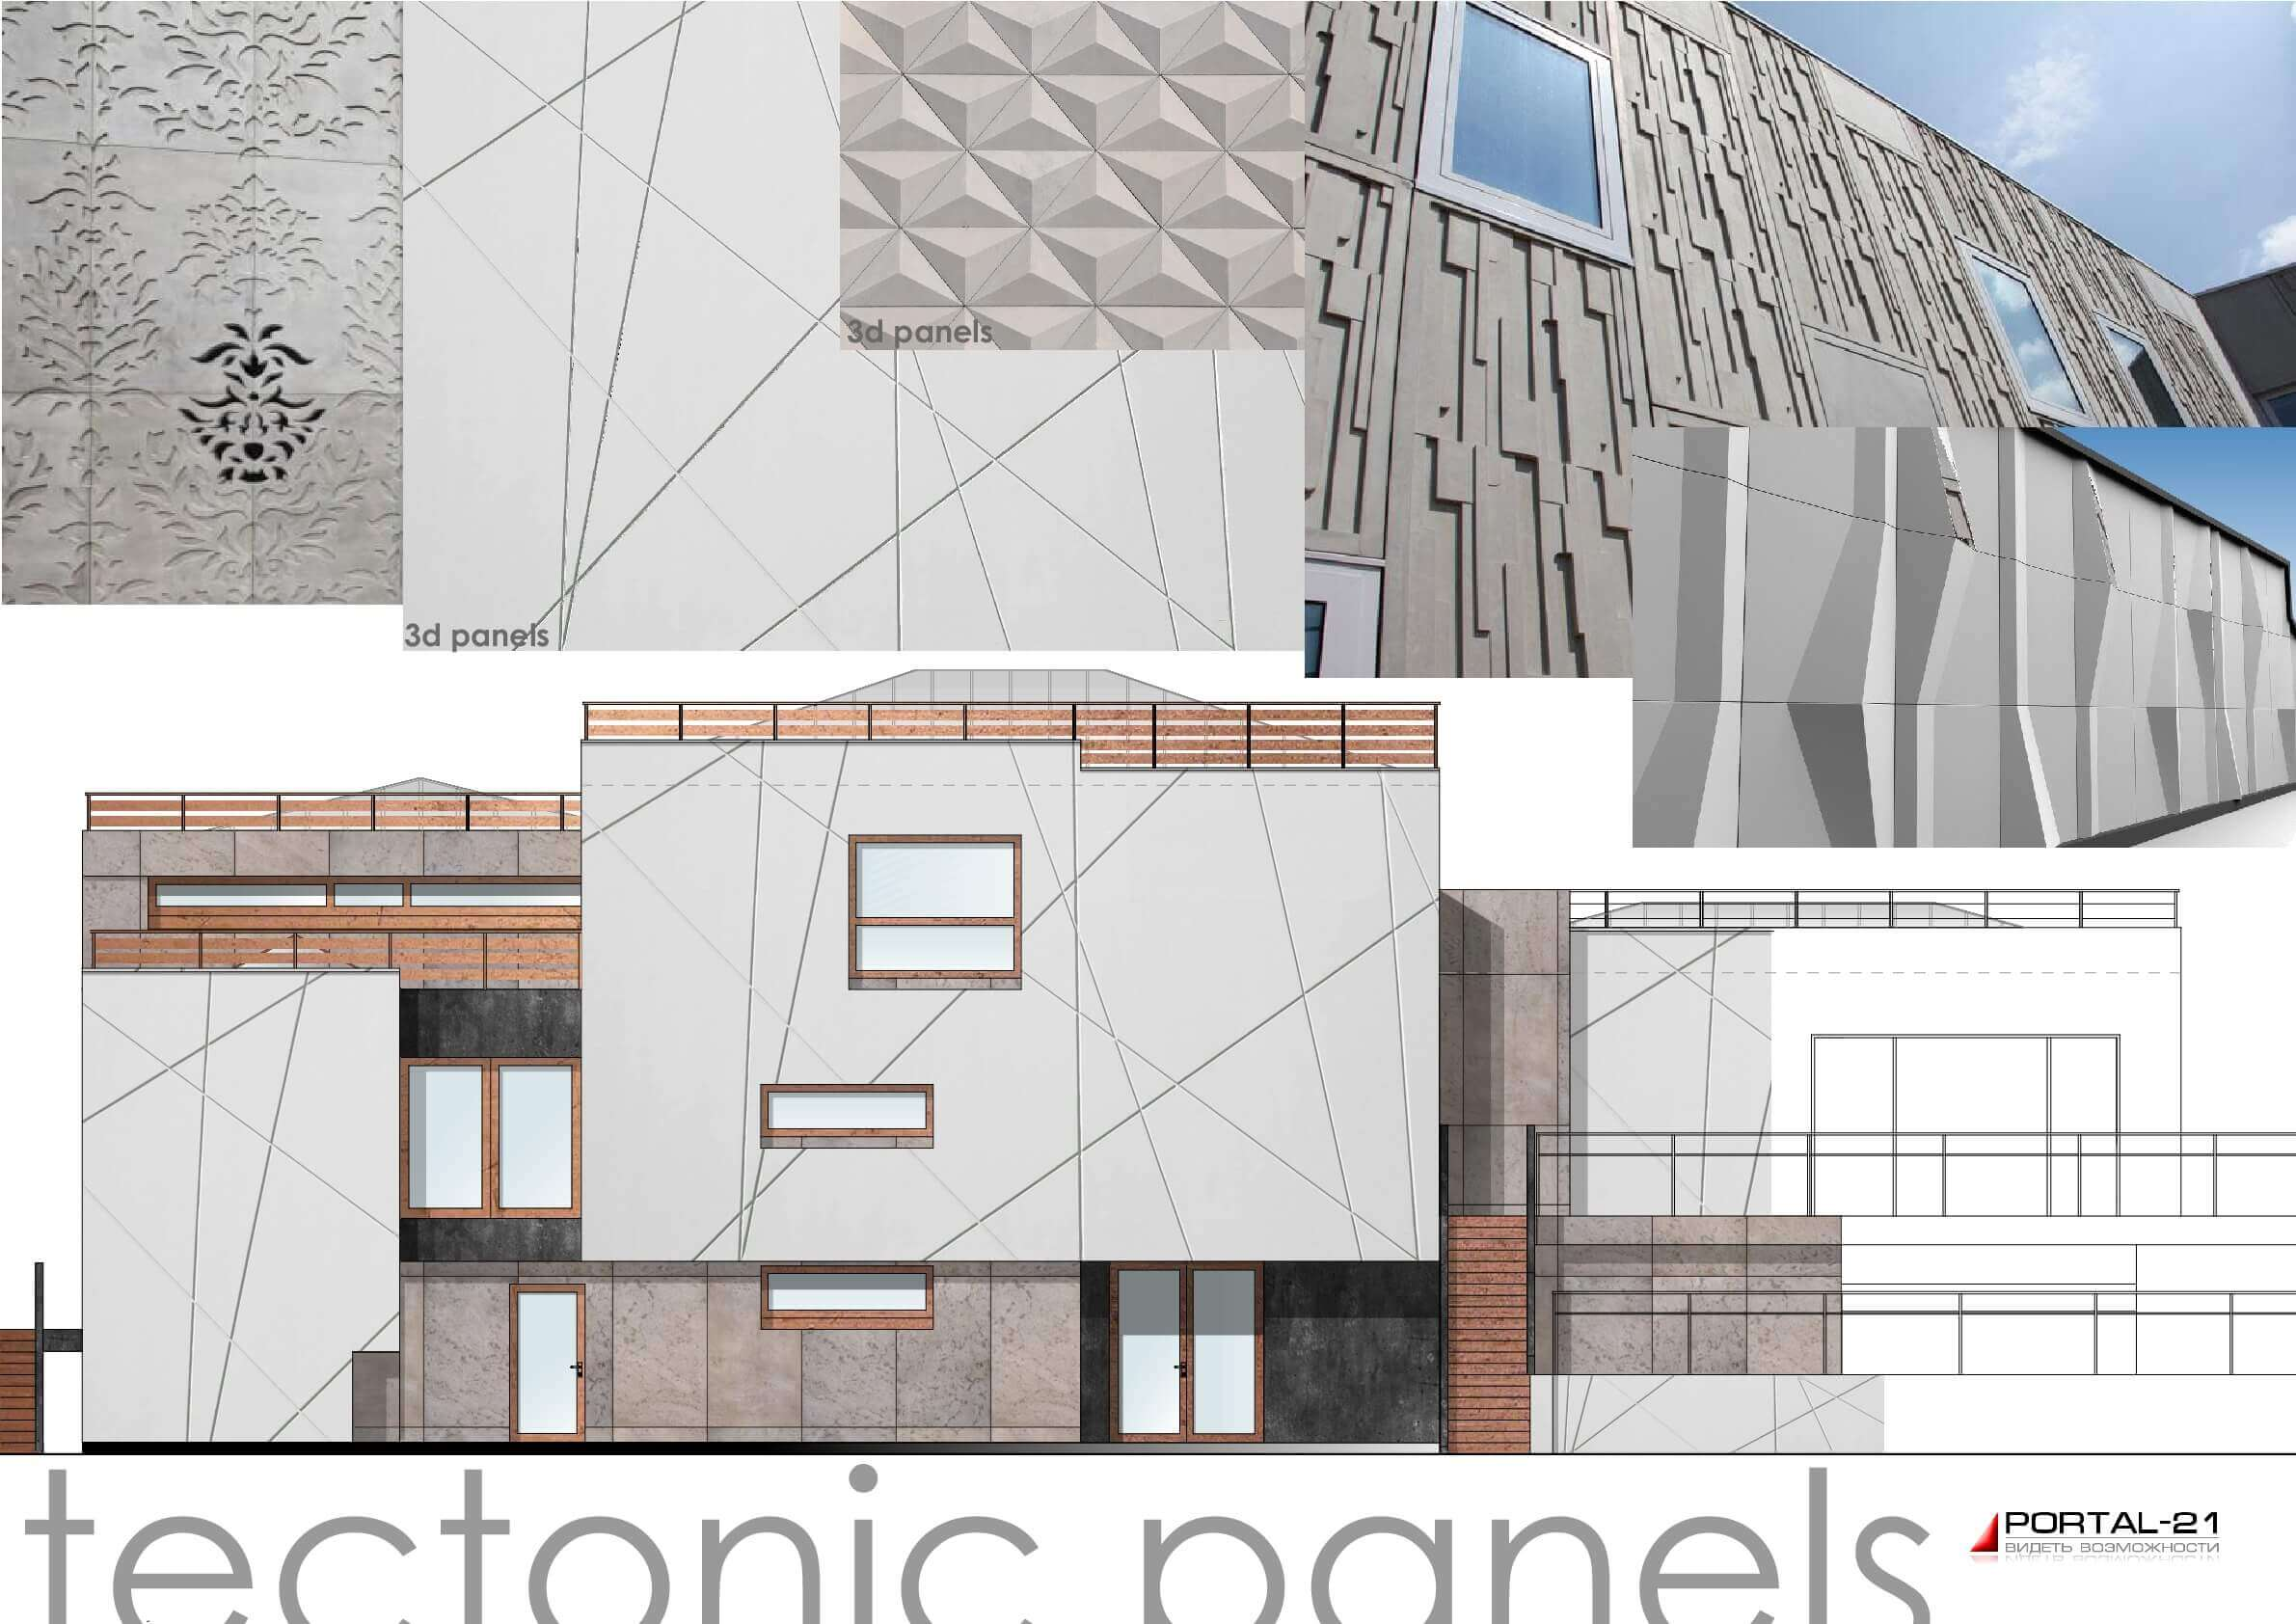 tectonic panels